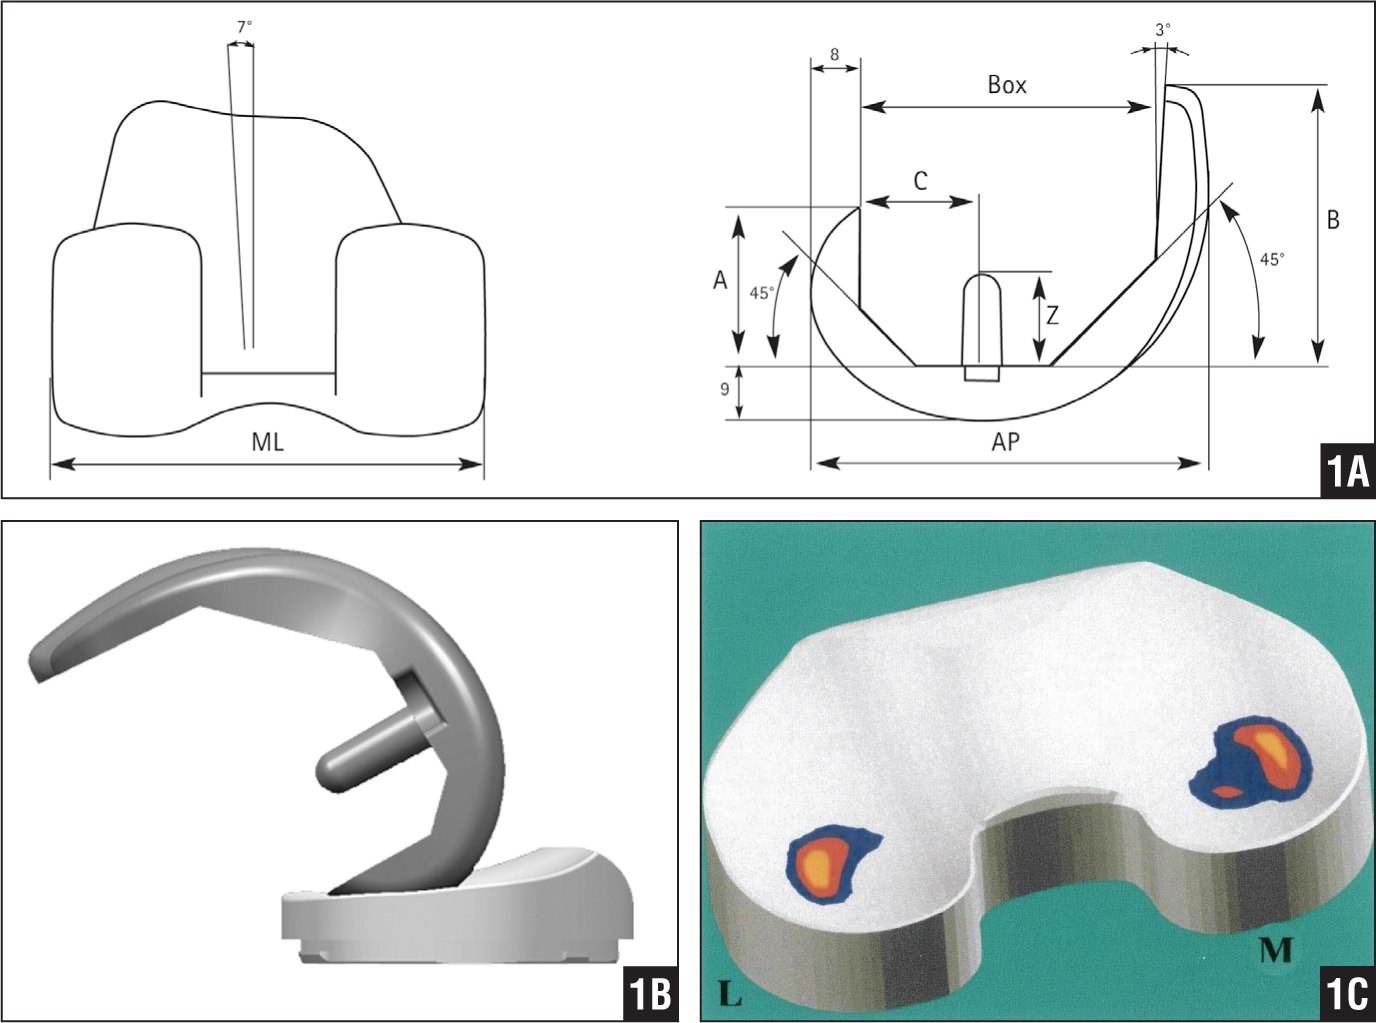 Illustrations of the Columbus Navigated TKA (Aesculap AG, Tuttlingen, Germany). The length of the posterior femoral condyles is reduced with a small radius (45°). When combined with the 3° polyethylene posterior slope, the total intrinsic flexion ability of the implant is theoretically improved up to 90°+45°+3°=138°. Abbreviations: 8, thickness in mm of the posterior prosthesis (posterior-femoral cut), 9, thickness in mm of the distal prosthesis (distal-femoral cut); A, height of the posterior condyle; AP, anteroposterior; B, height of the anterior condyle; BOX, anteroposterior distance of the distal femoral bone; C, distance between the peg hole and the posterior condyle; ML, mediolateral; Z, length of the peg (A). Illustration of the Columbus Navigated TKA with a built-in posterior slope of 3° in a standard deep dish or ultracongruent version (B). Illustration showing that maximum load force (2.5× body weight) while heel strike is at 0° is at the posterior half of the polyethylene on an area of approximately 236 mm2 (red and blue). This is expected in a 3° posterior slope tibial polyethylene design. Abbreviations: L, lateral; M, medial (C). [Images reprinted with permission from Aesculap Implant Systems, LLC.]